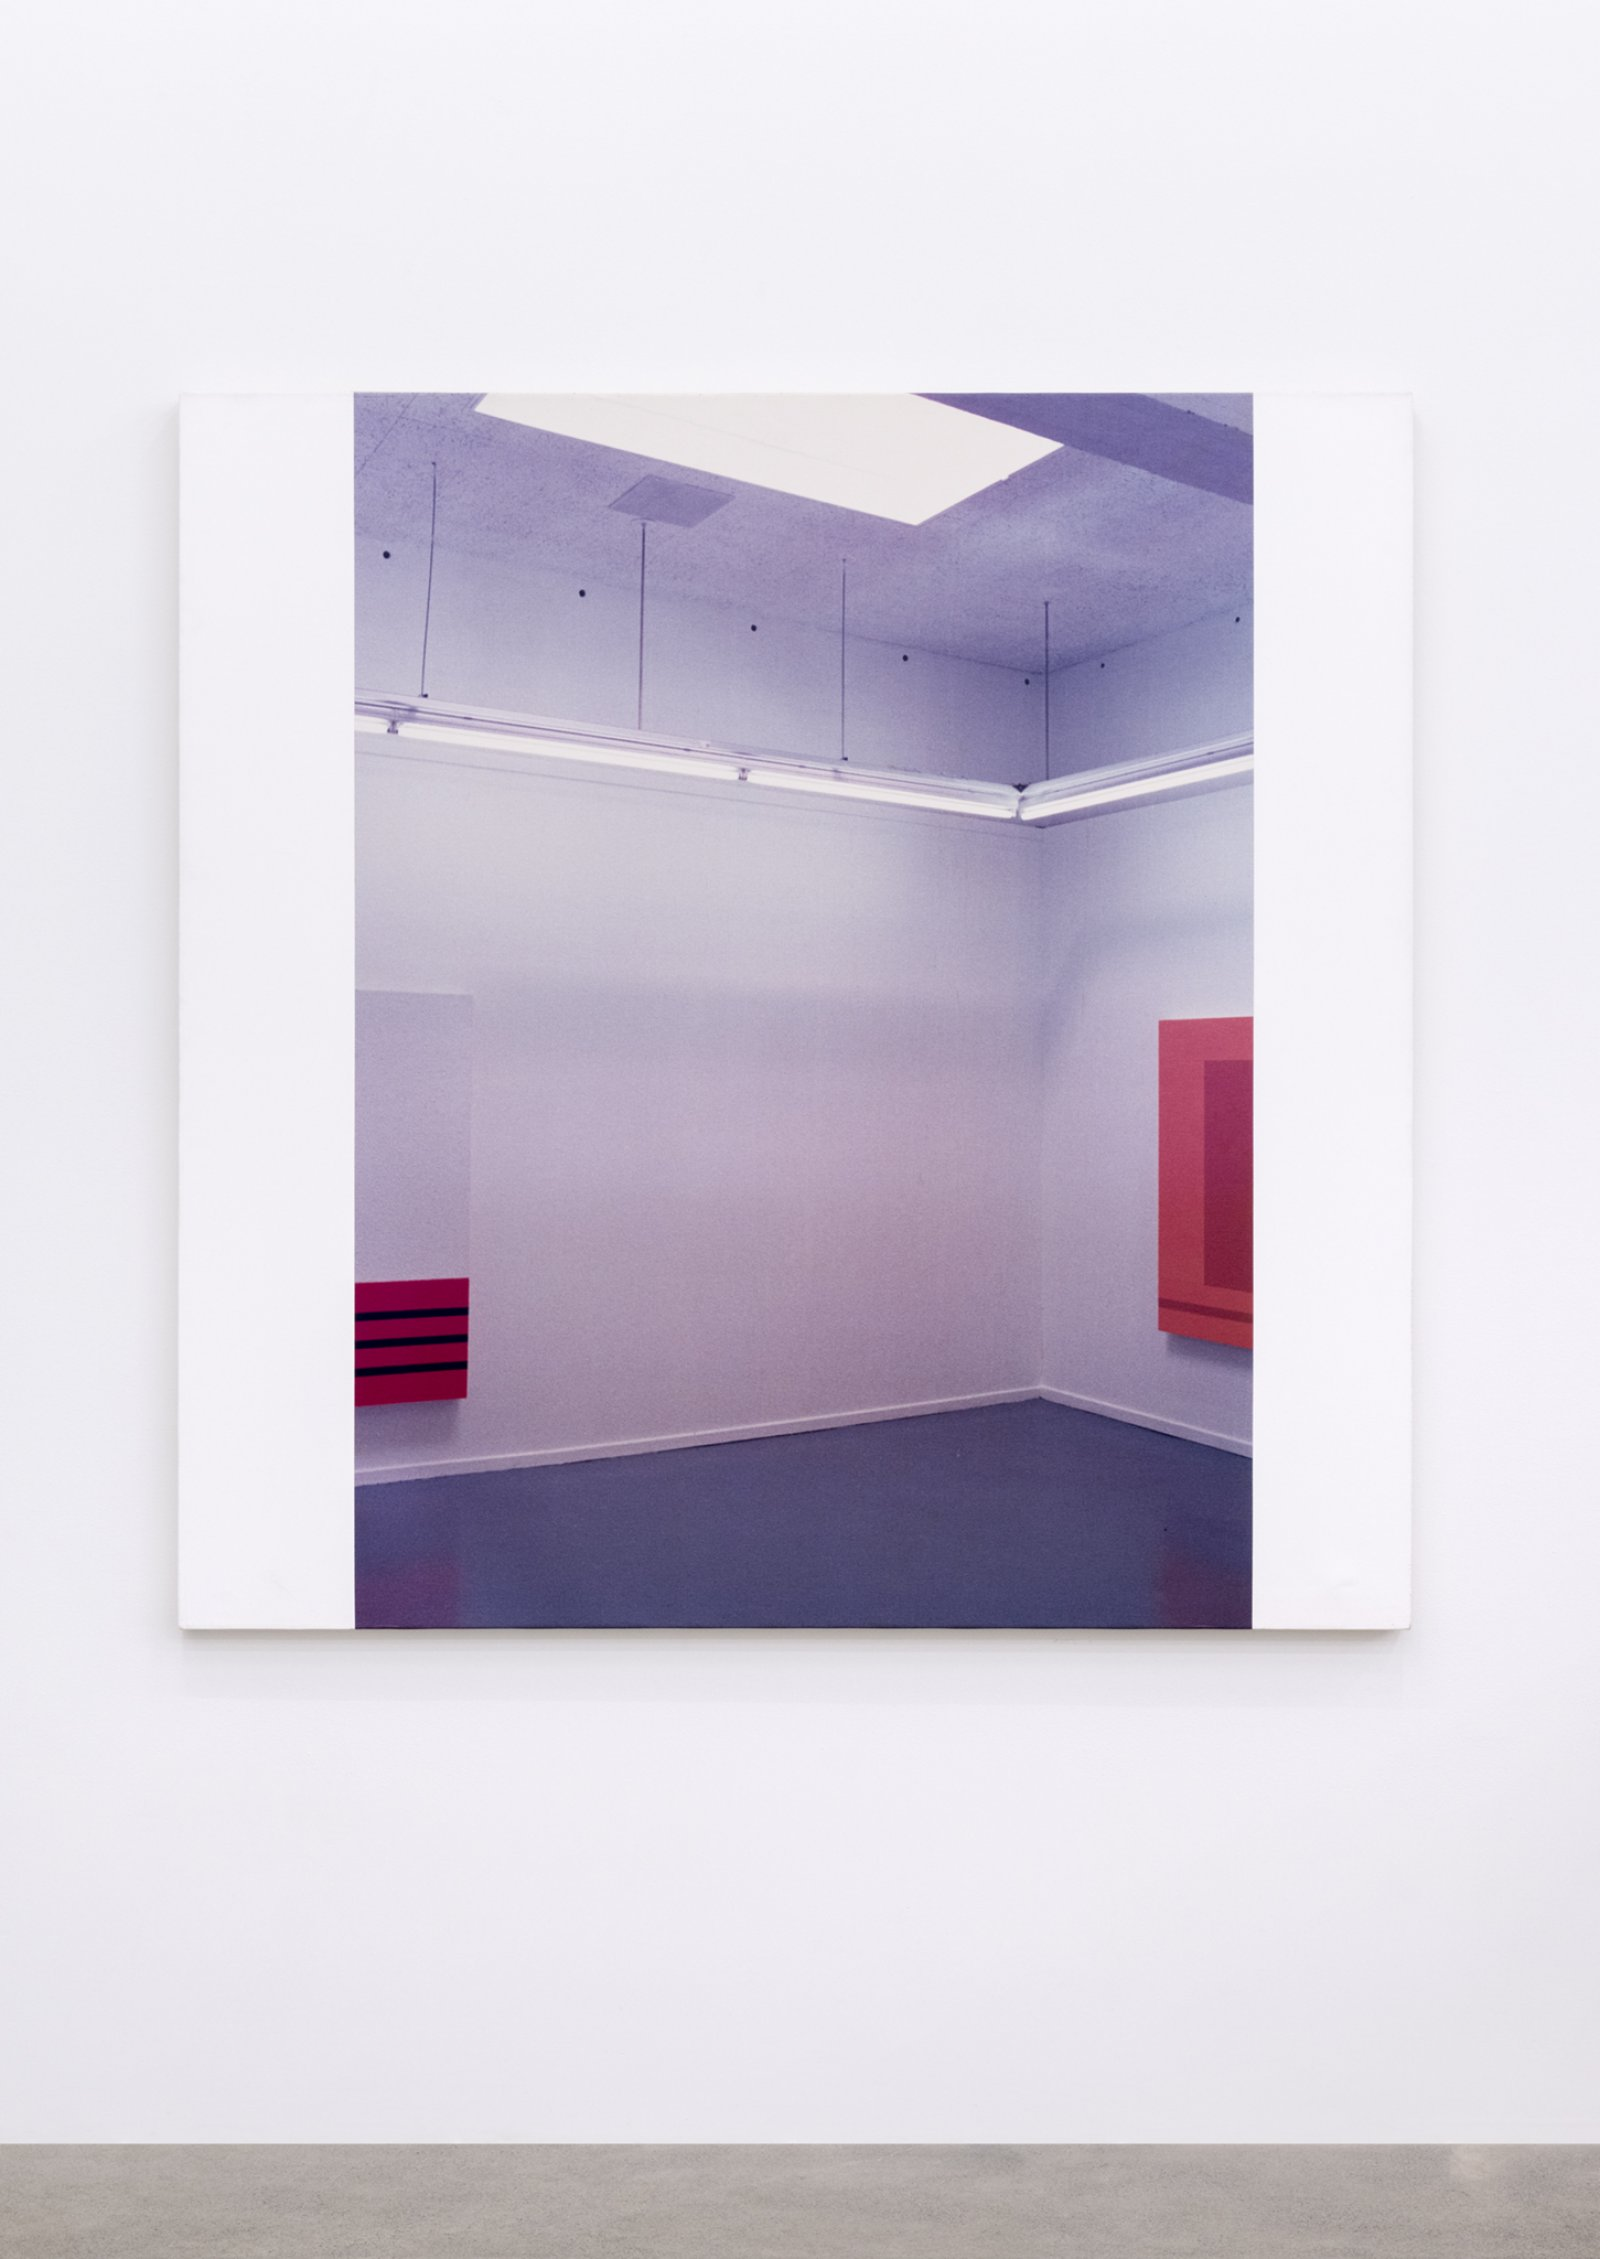 Ian Wallace, In The Museum (Peter Halley Series II), 1989, photolaminate and acrylic on canvas, 60 x 60 in. (153 x 153 cm)